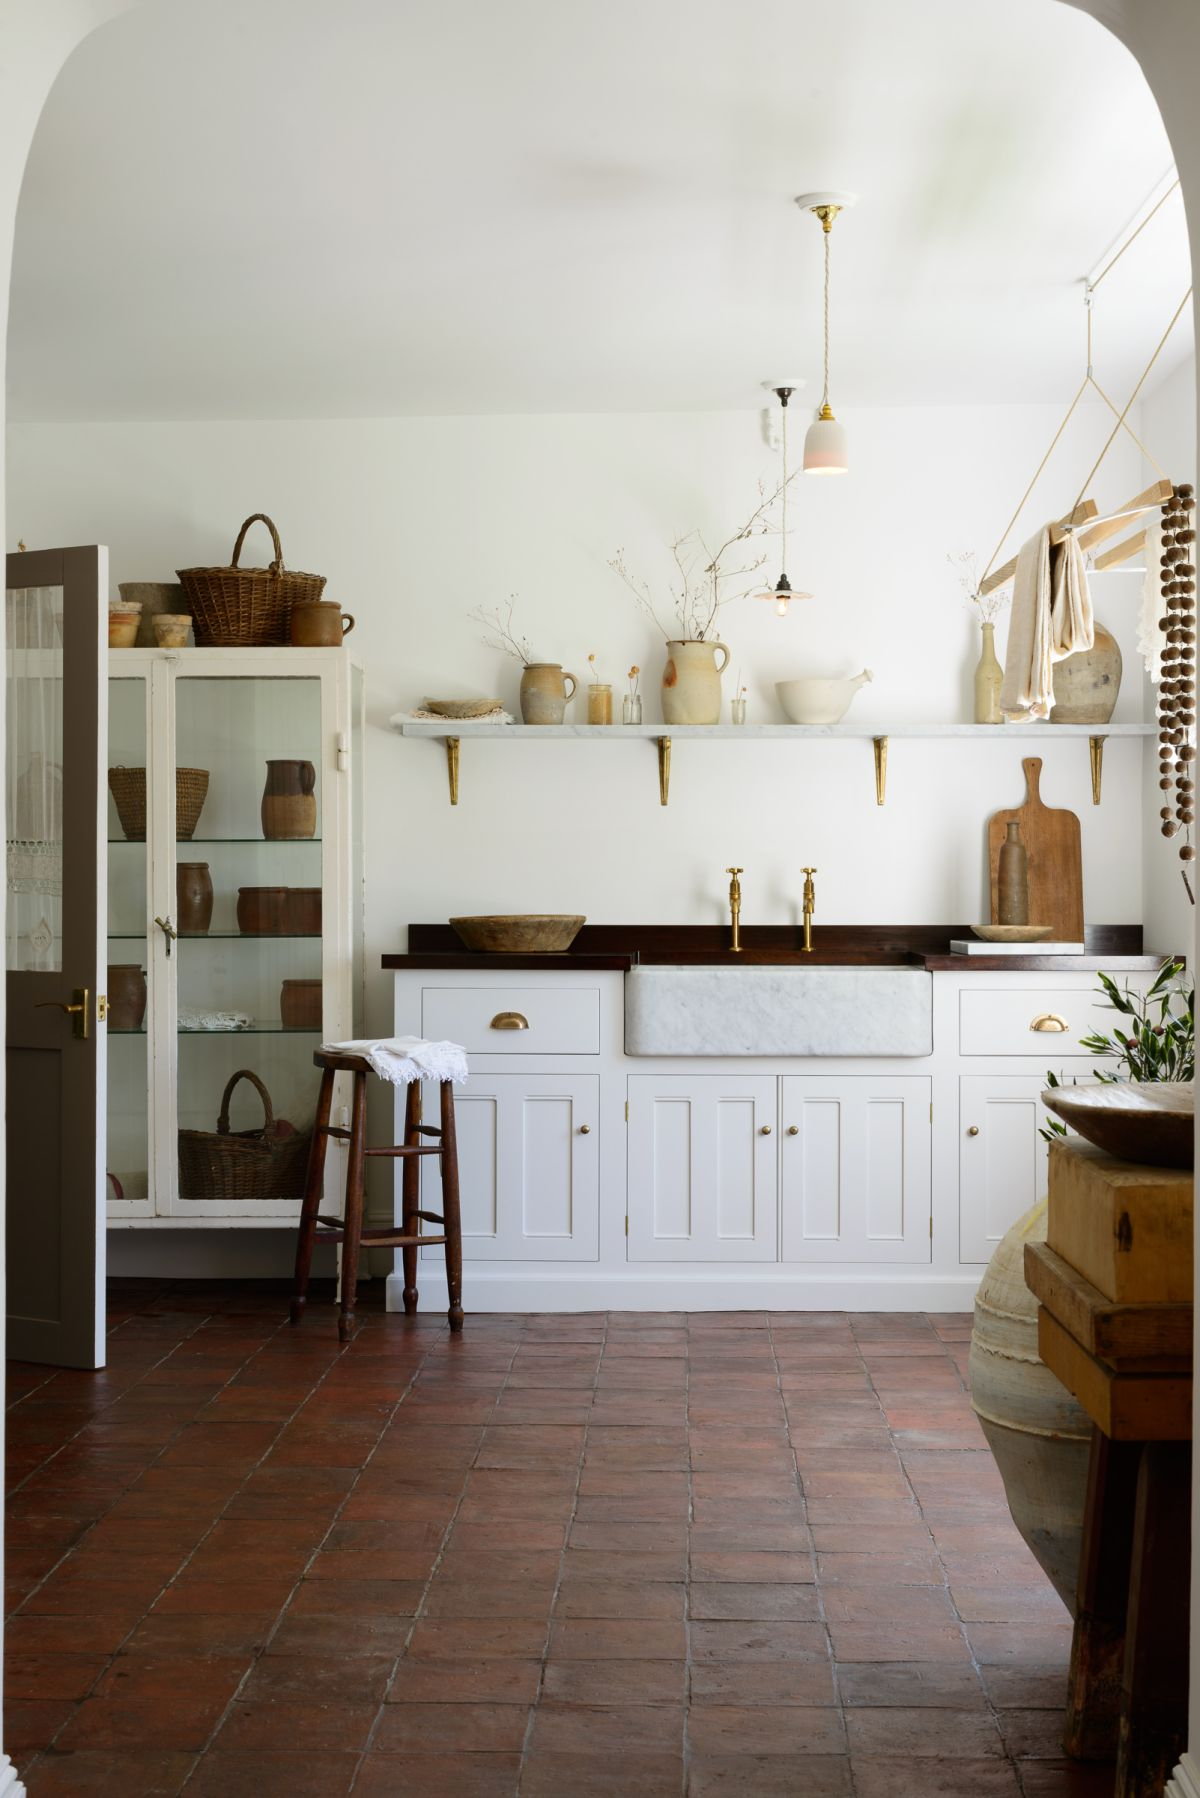 Kitchen Design 10 Steps To Help You Design A Kitchen With Ease Real Homes